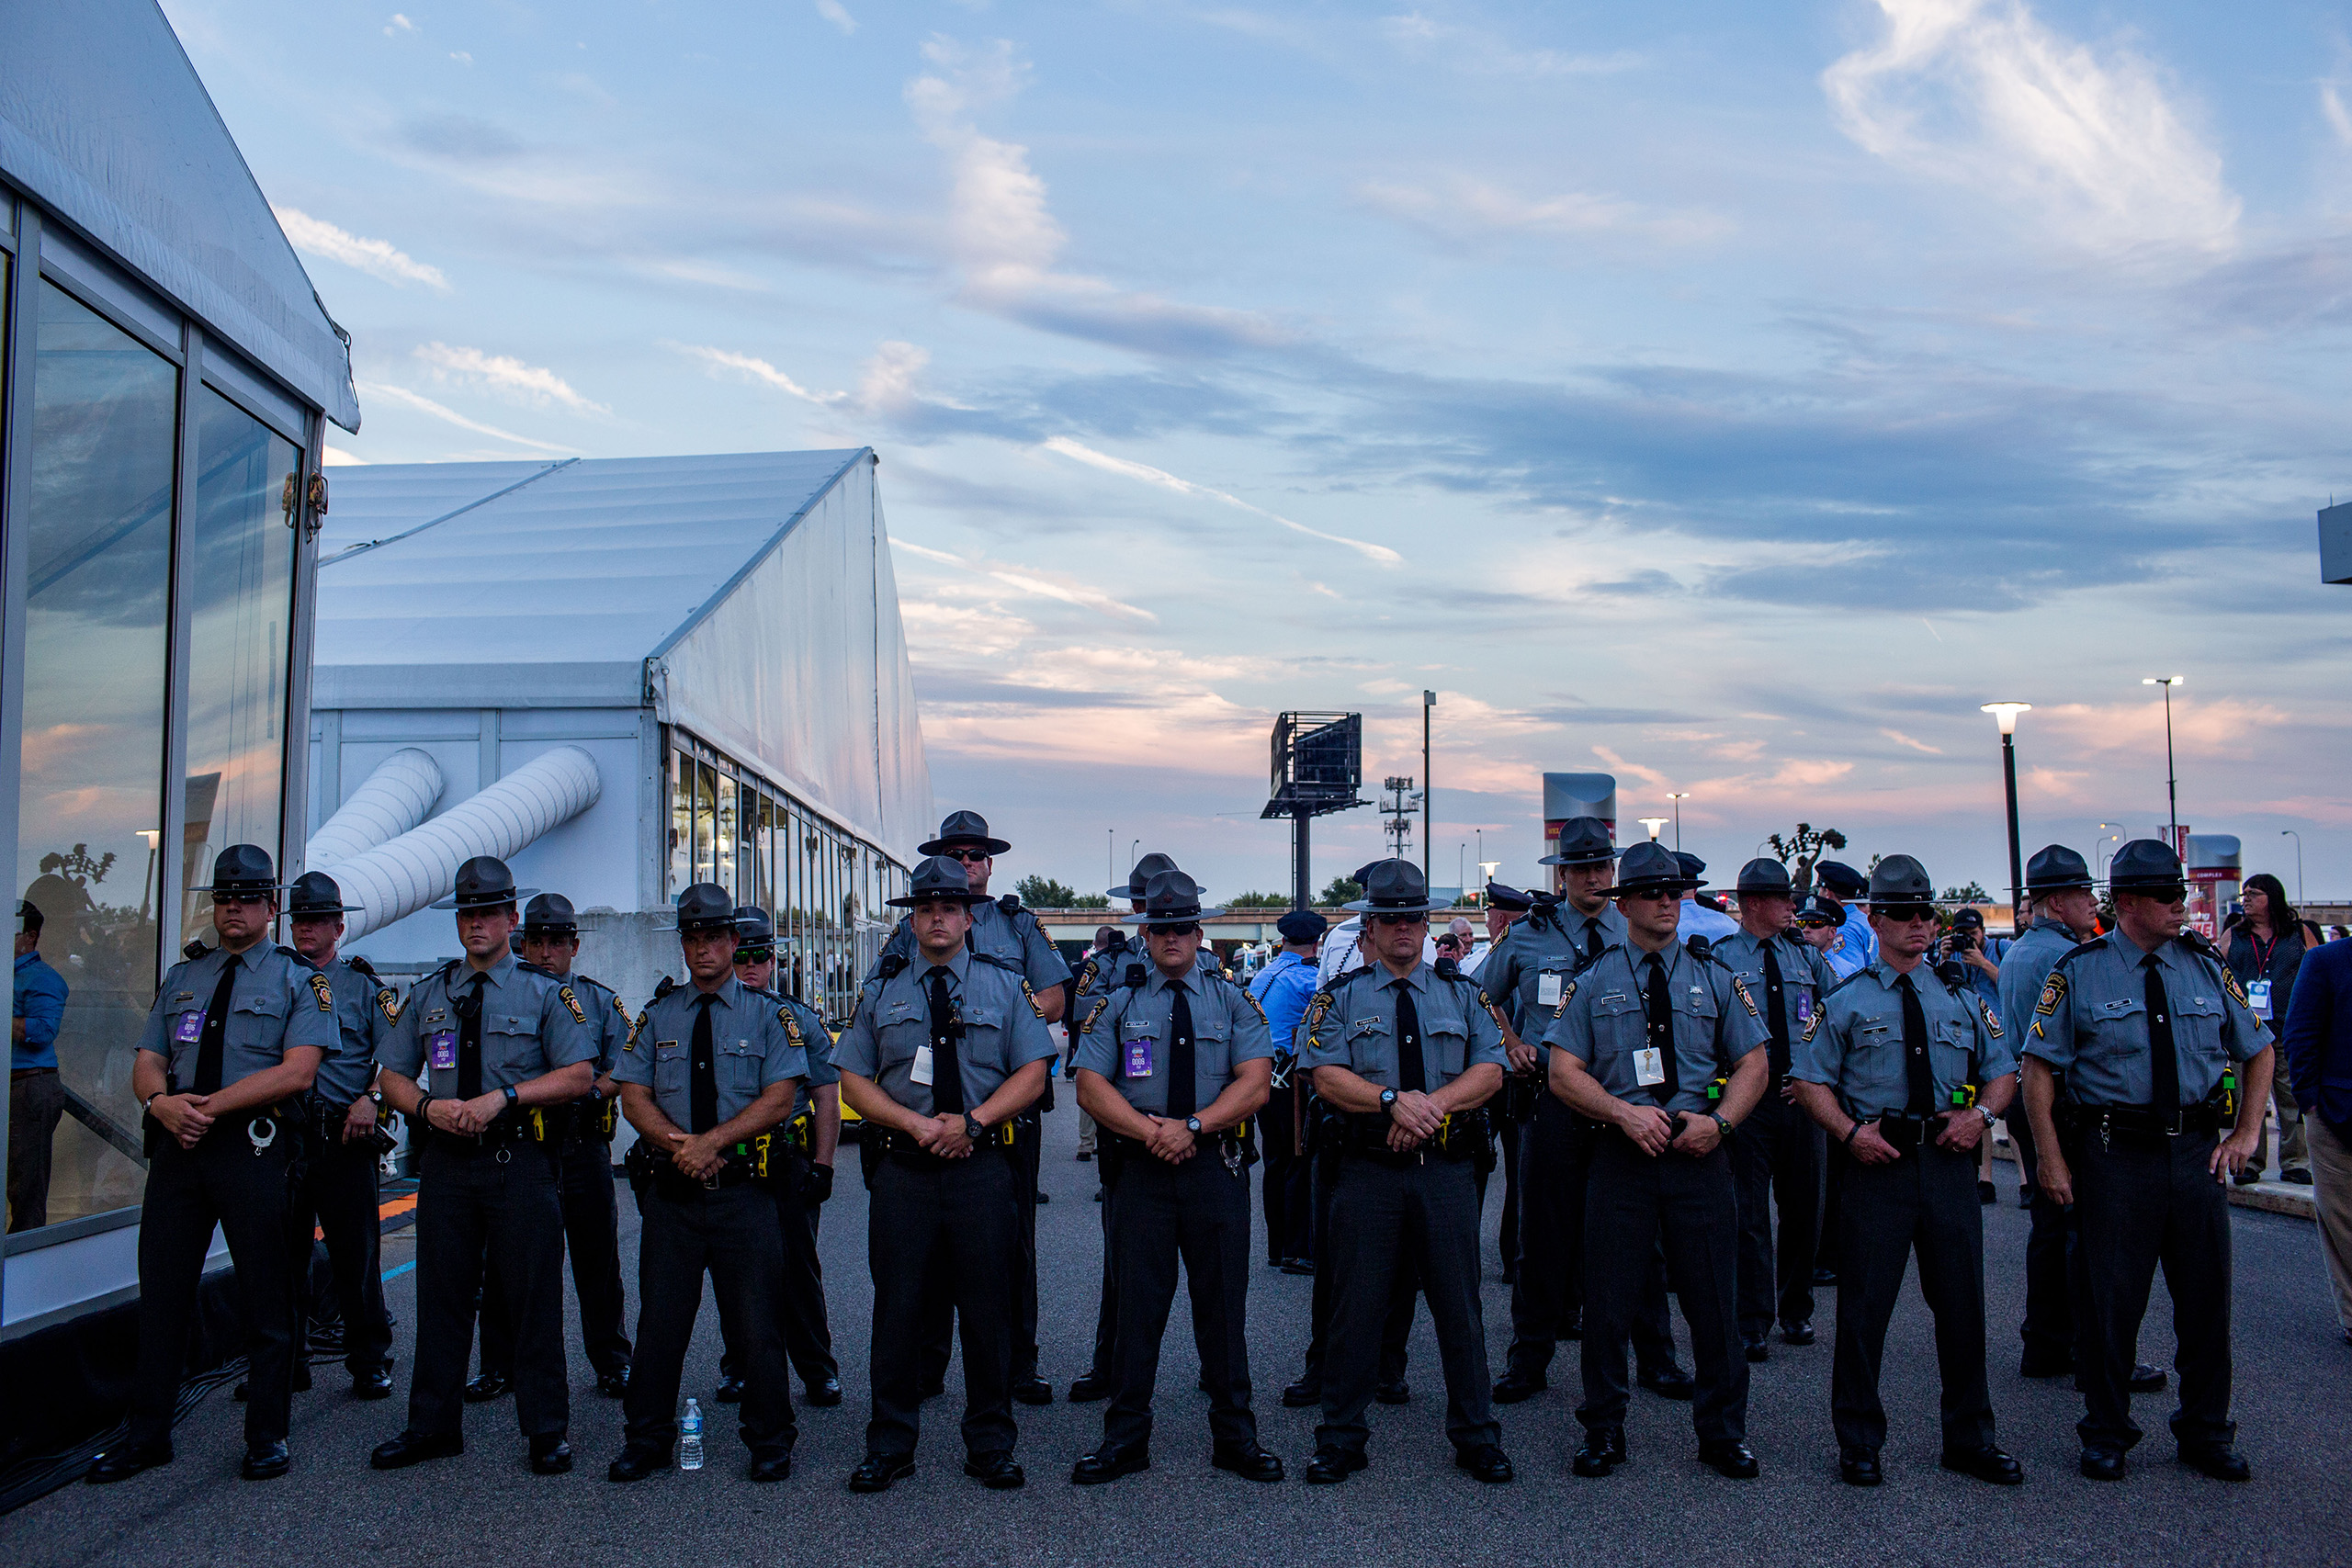 Police guard a protest of pro Bernie Sanders delegates at the media tent during the Democratic National Convention at the Wells Fargo Center on July 26, 2016 in Philadelphia.